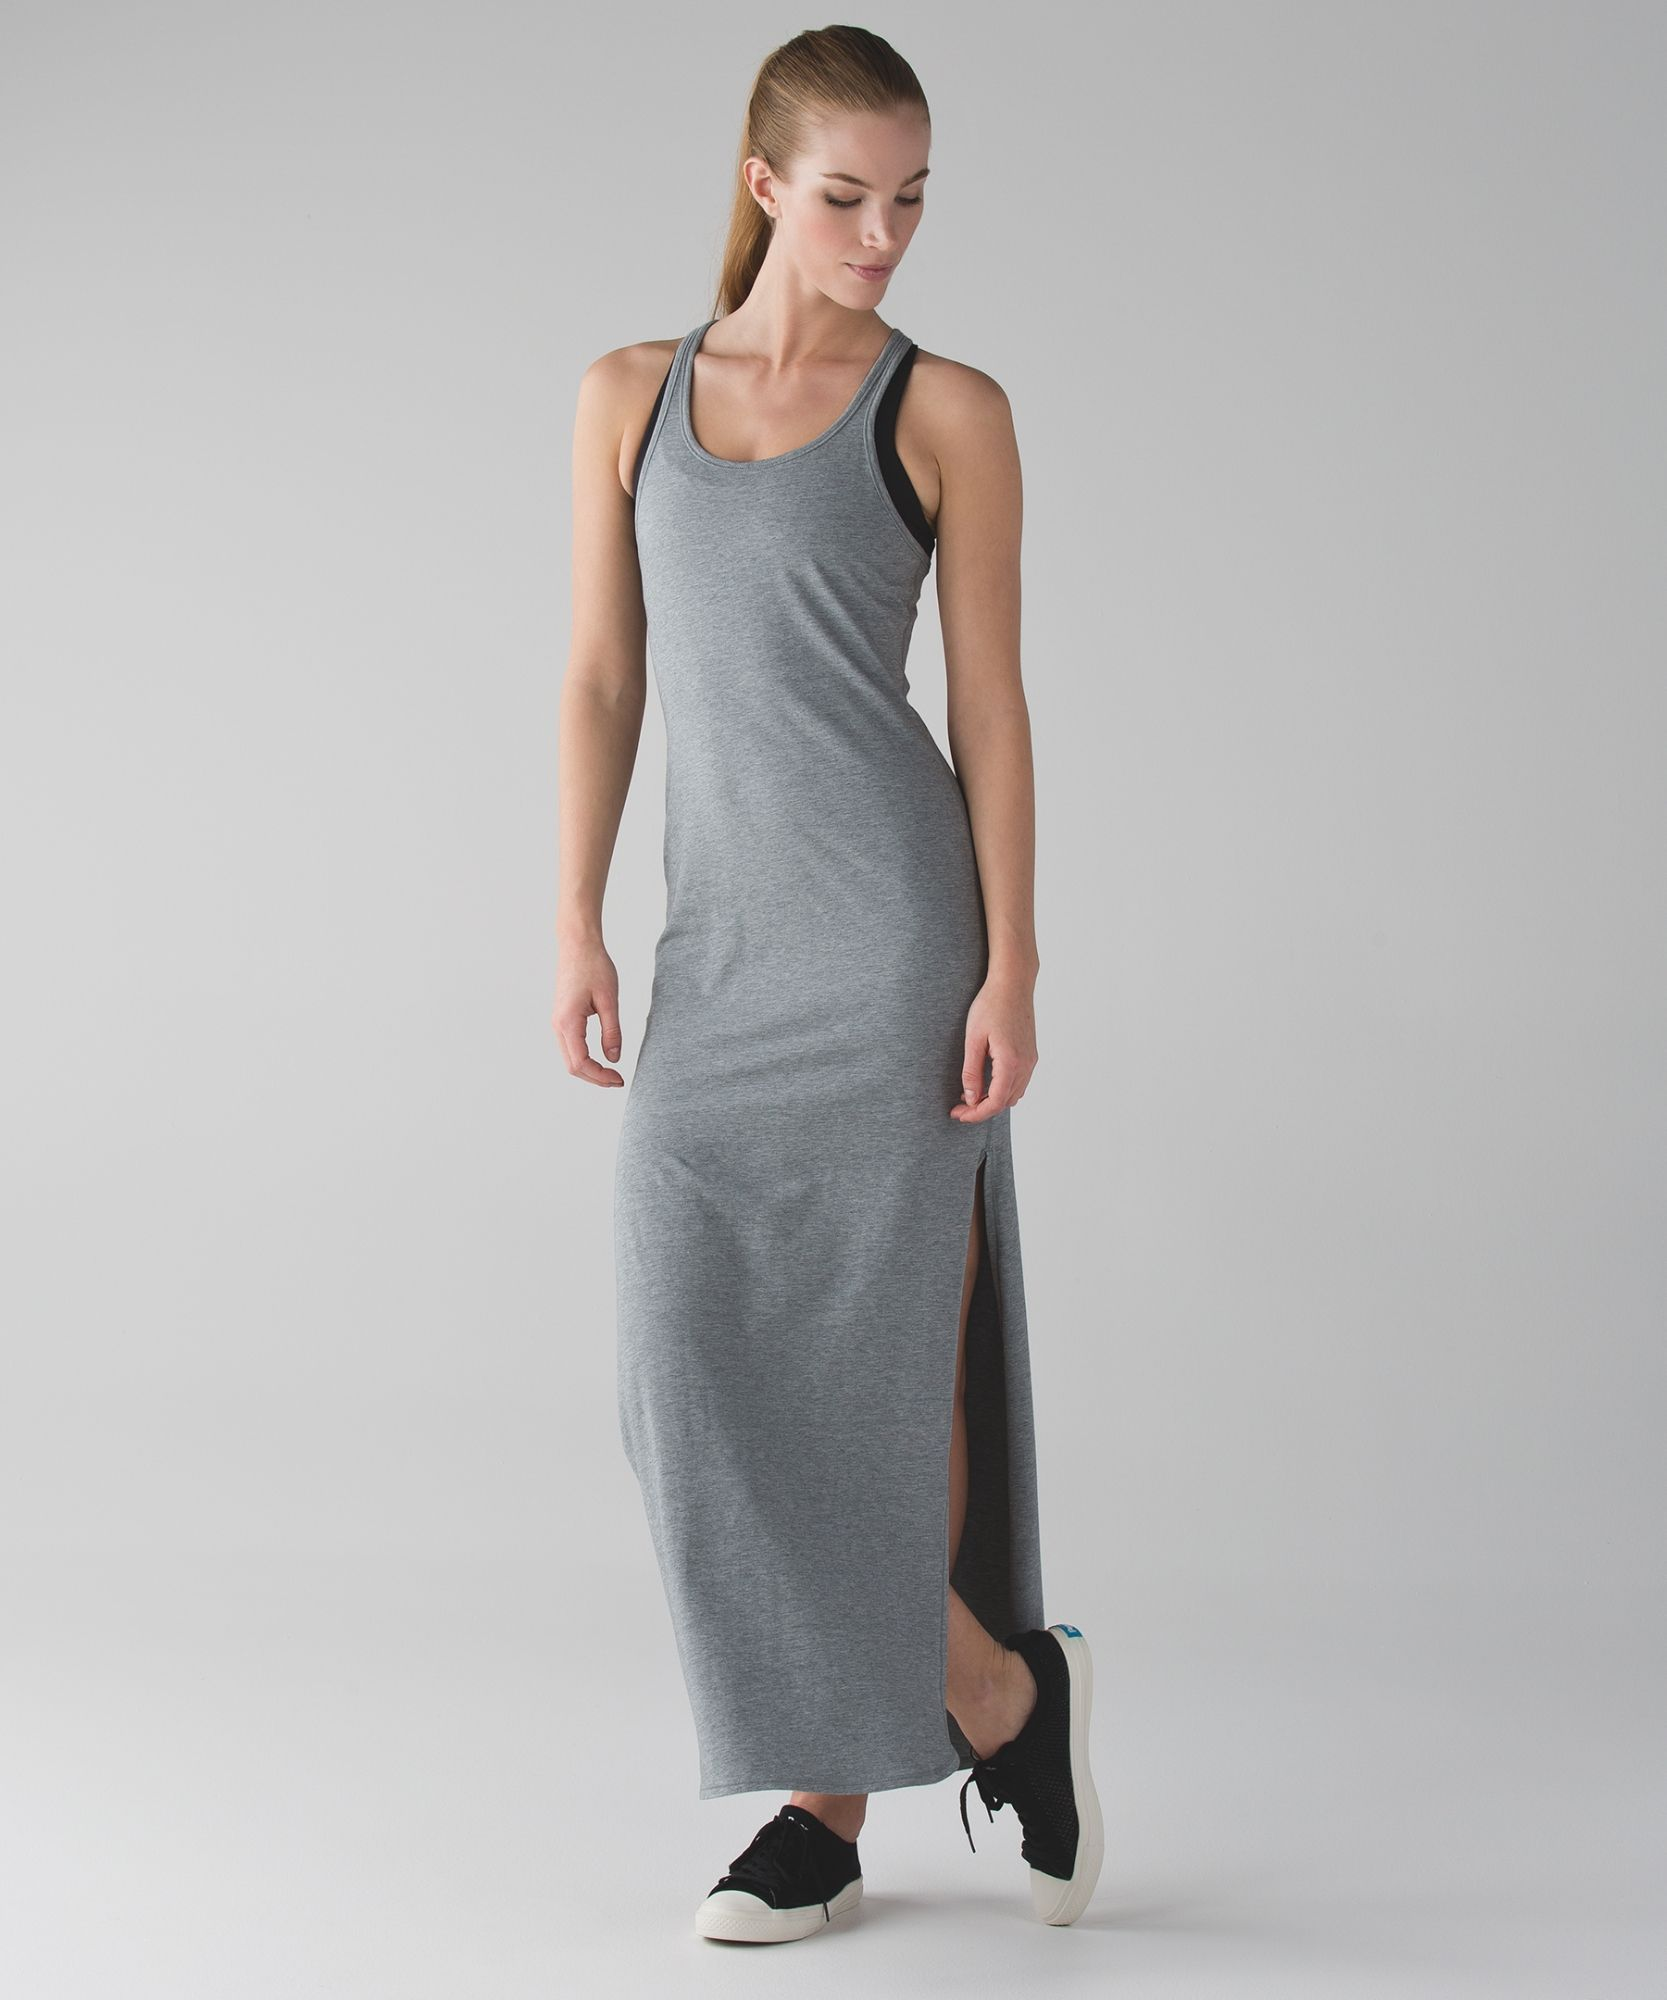 295e31667 Refresh Maxi Dress II HMDG- Heathered Medium Grey Size 6 94% Pima Cotton &  6% Lycra Elastane